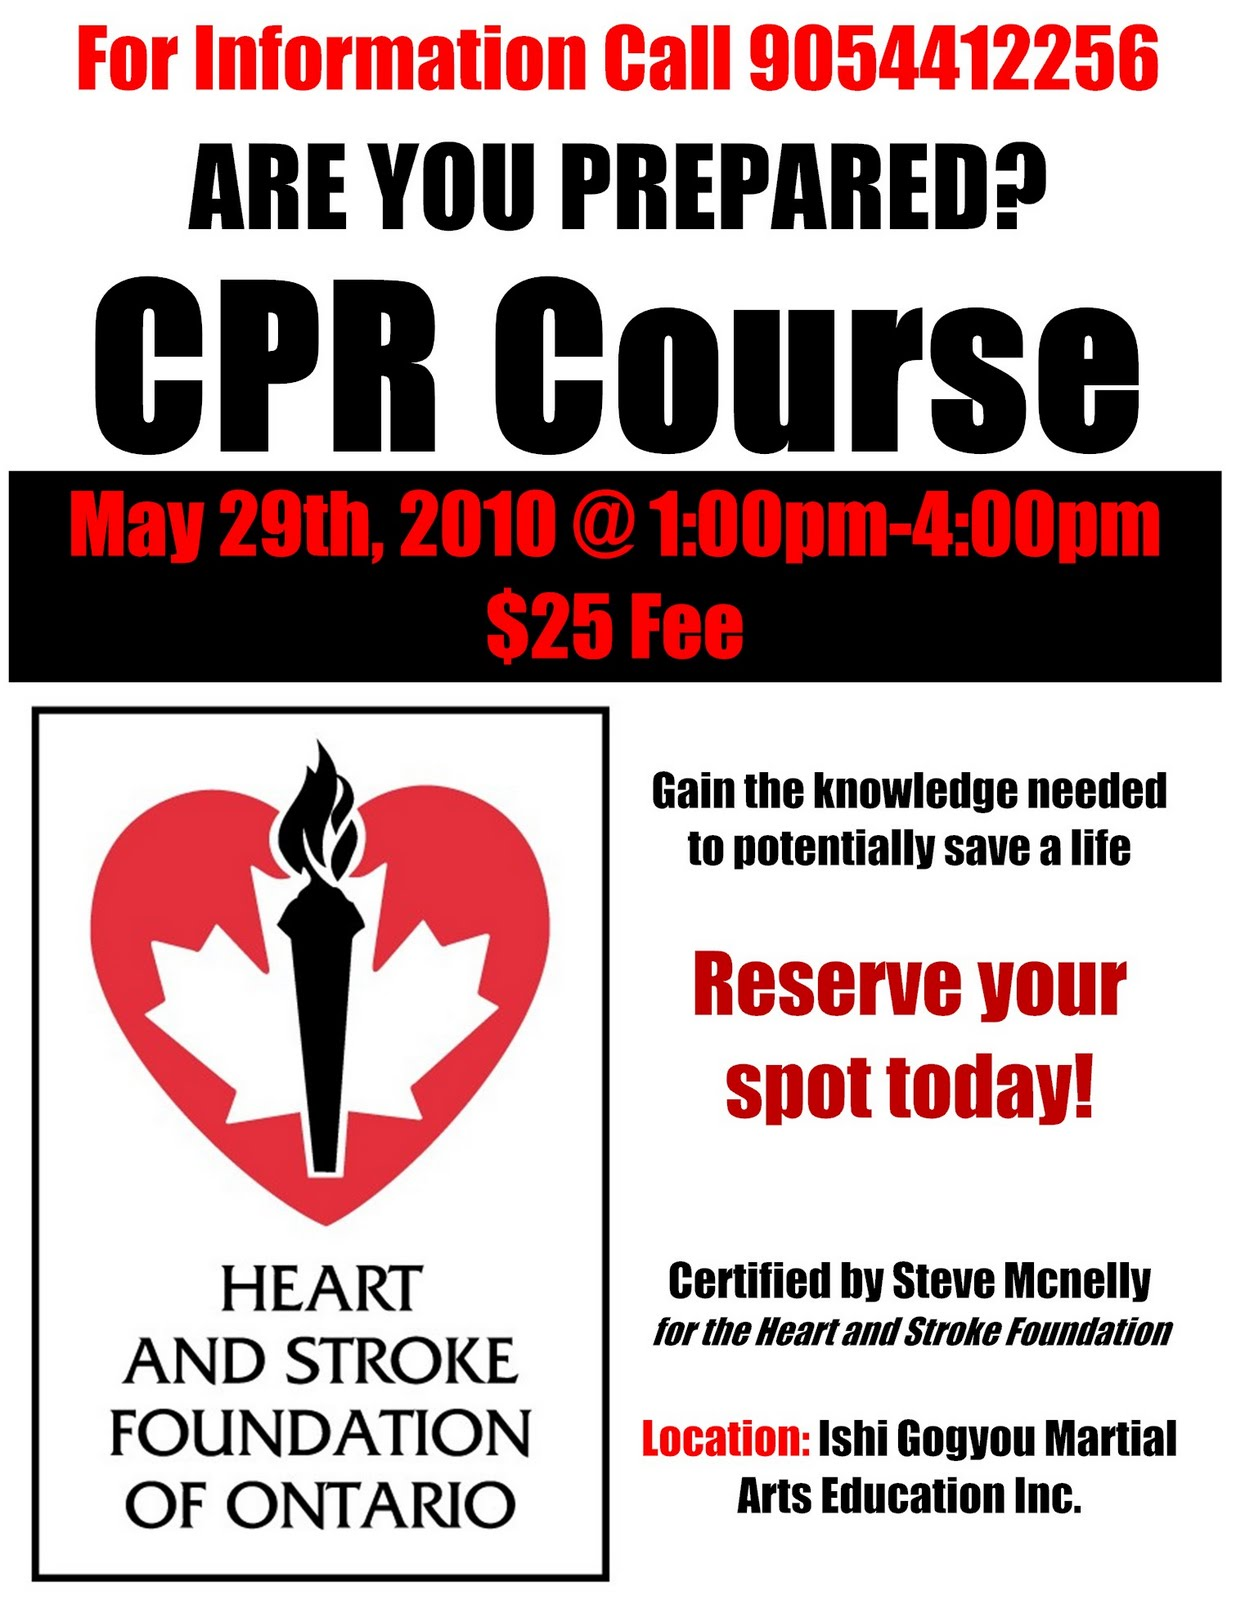 Cpr certification course the dojo on may 29th 2010 dojo news cpr certification course the dojo on may 29th 2010 xflitez Choice Image